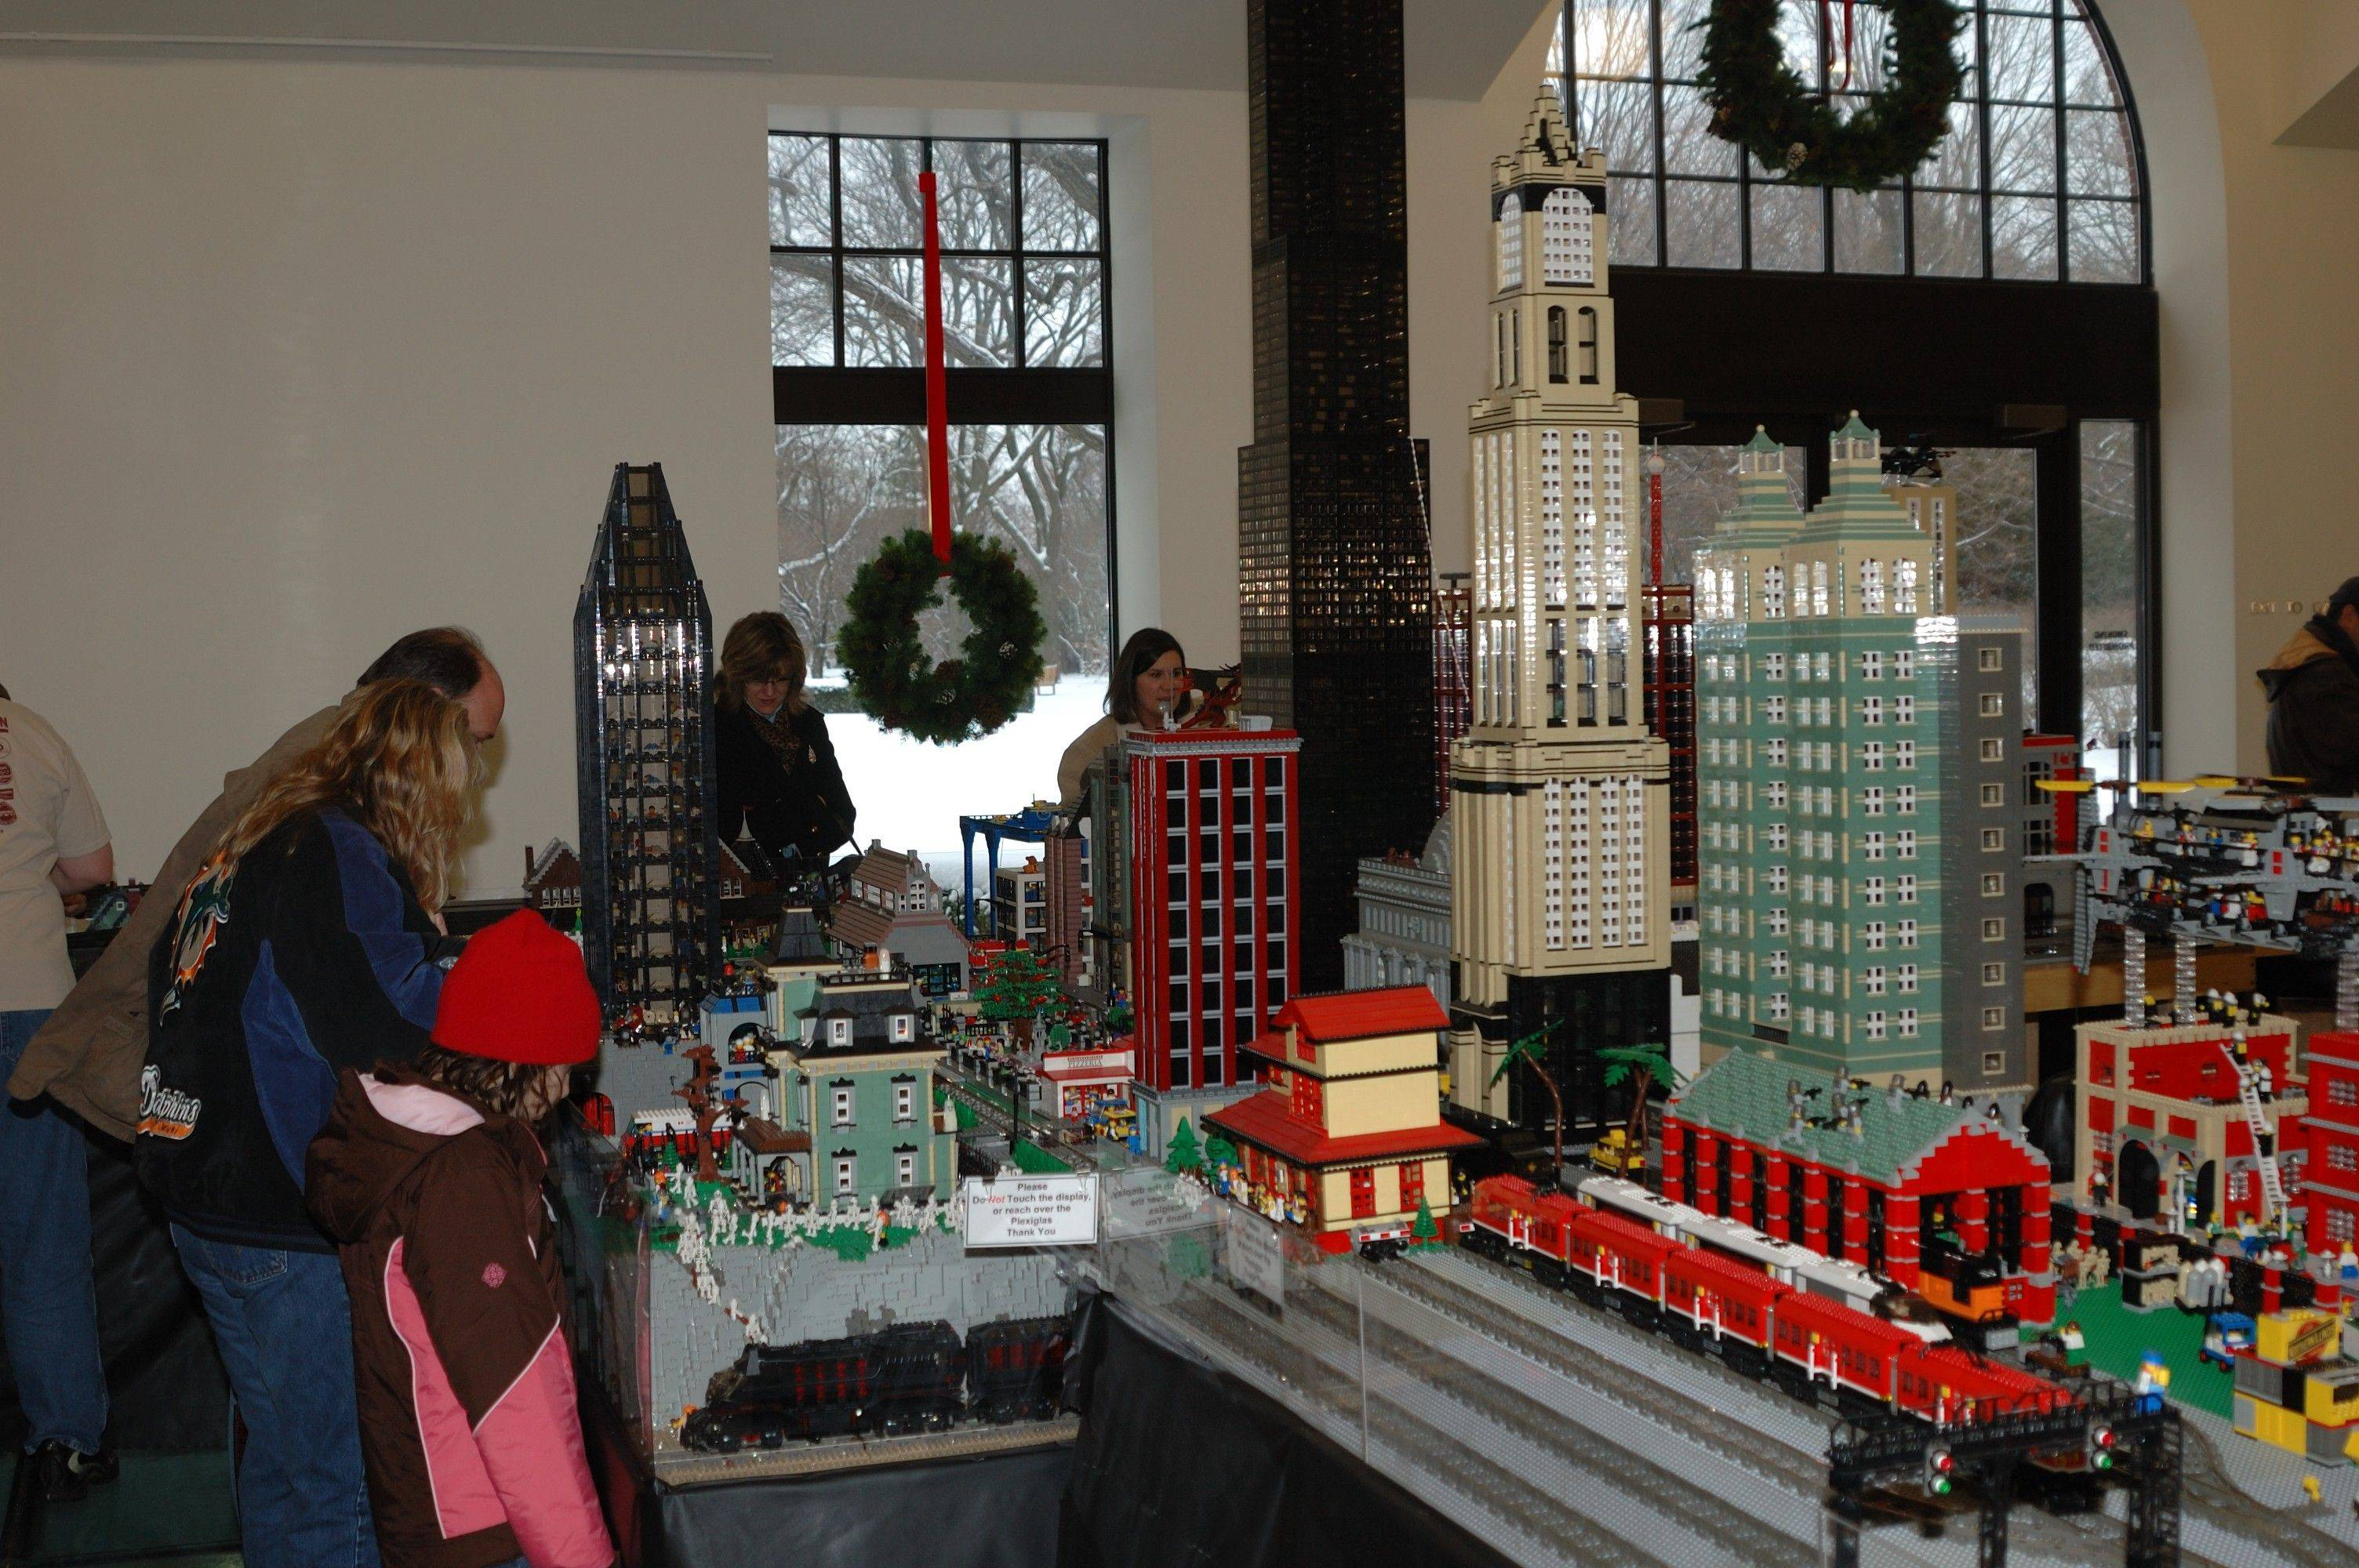 Visitors will have more room to explore the displays this year as the Lego Train Show has expanded throughout the Cantigny Visitors Center.